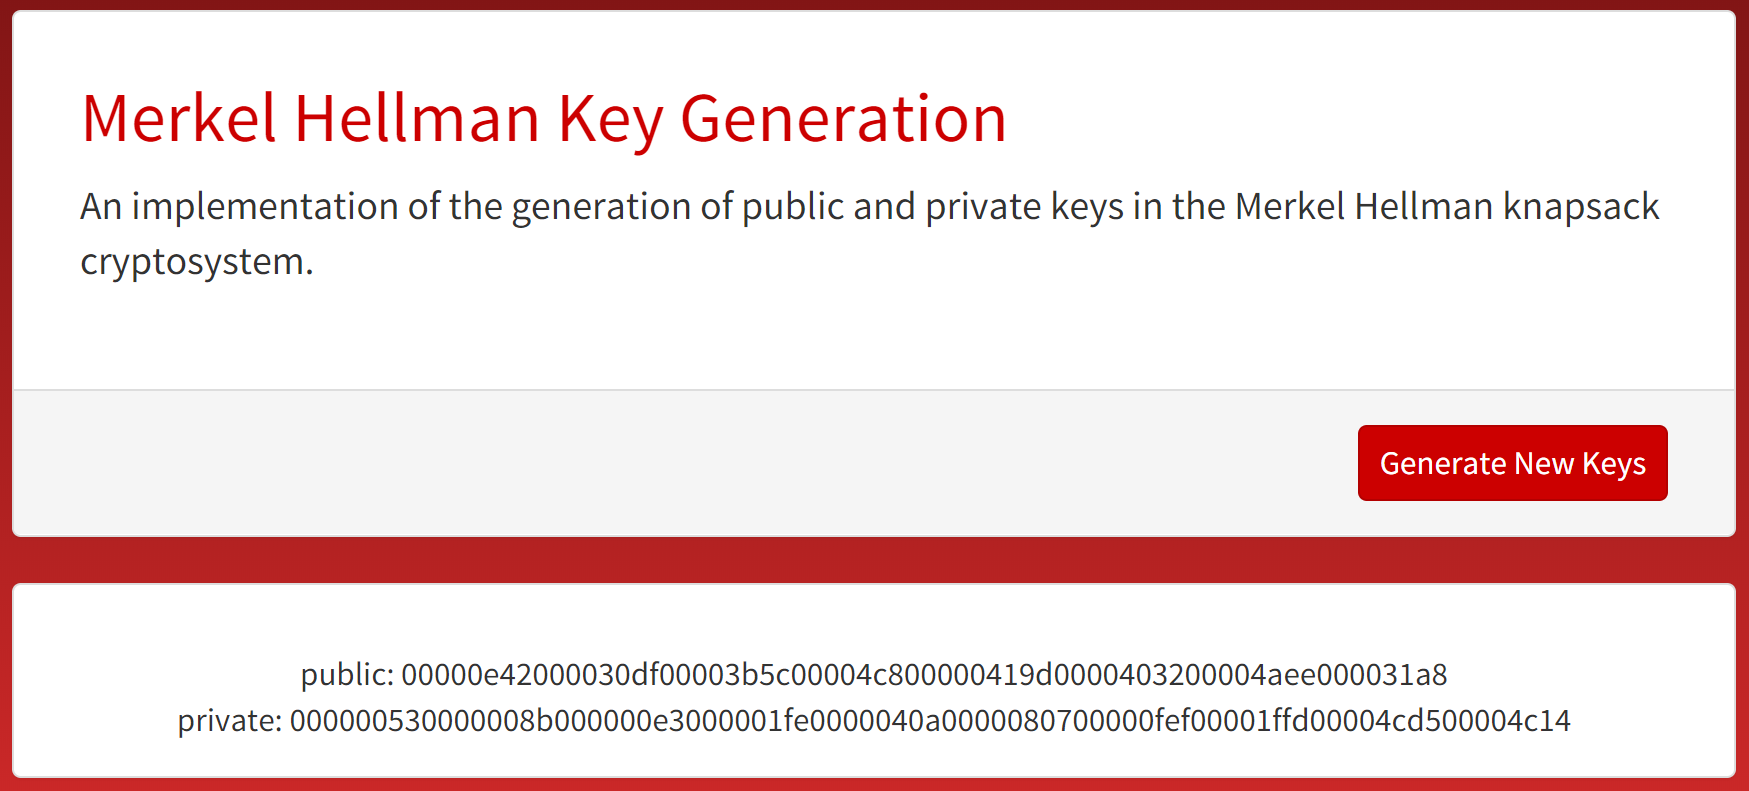 Key Generation Microsite